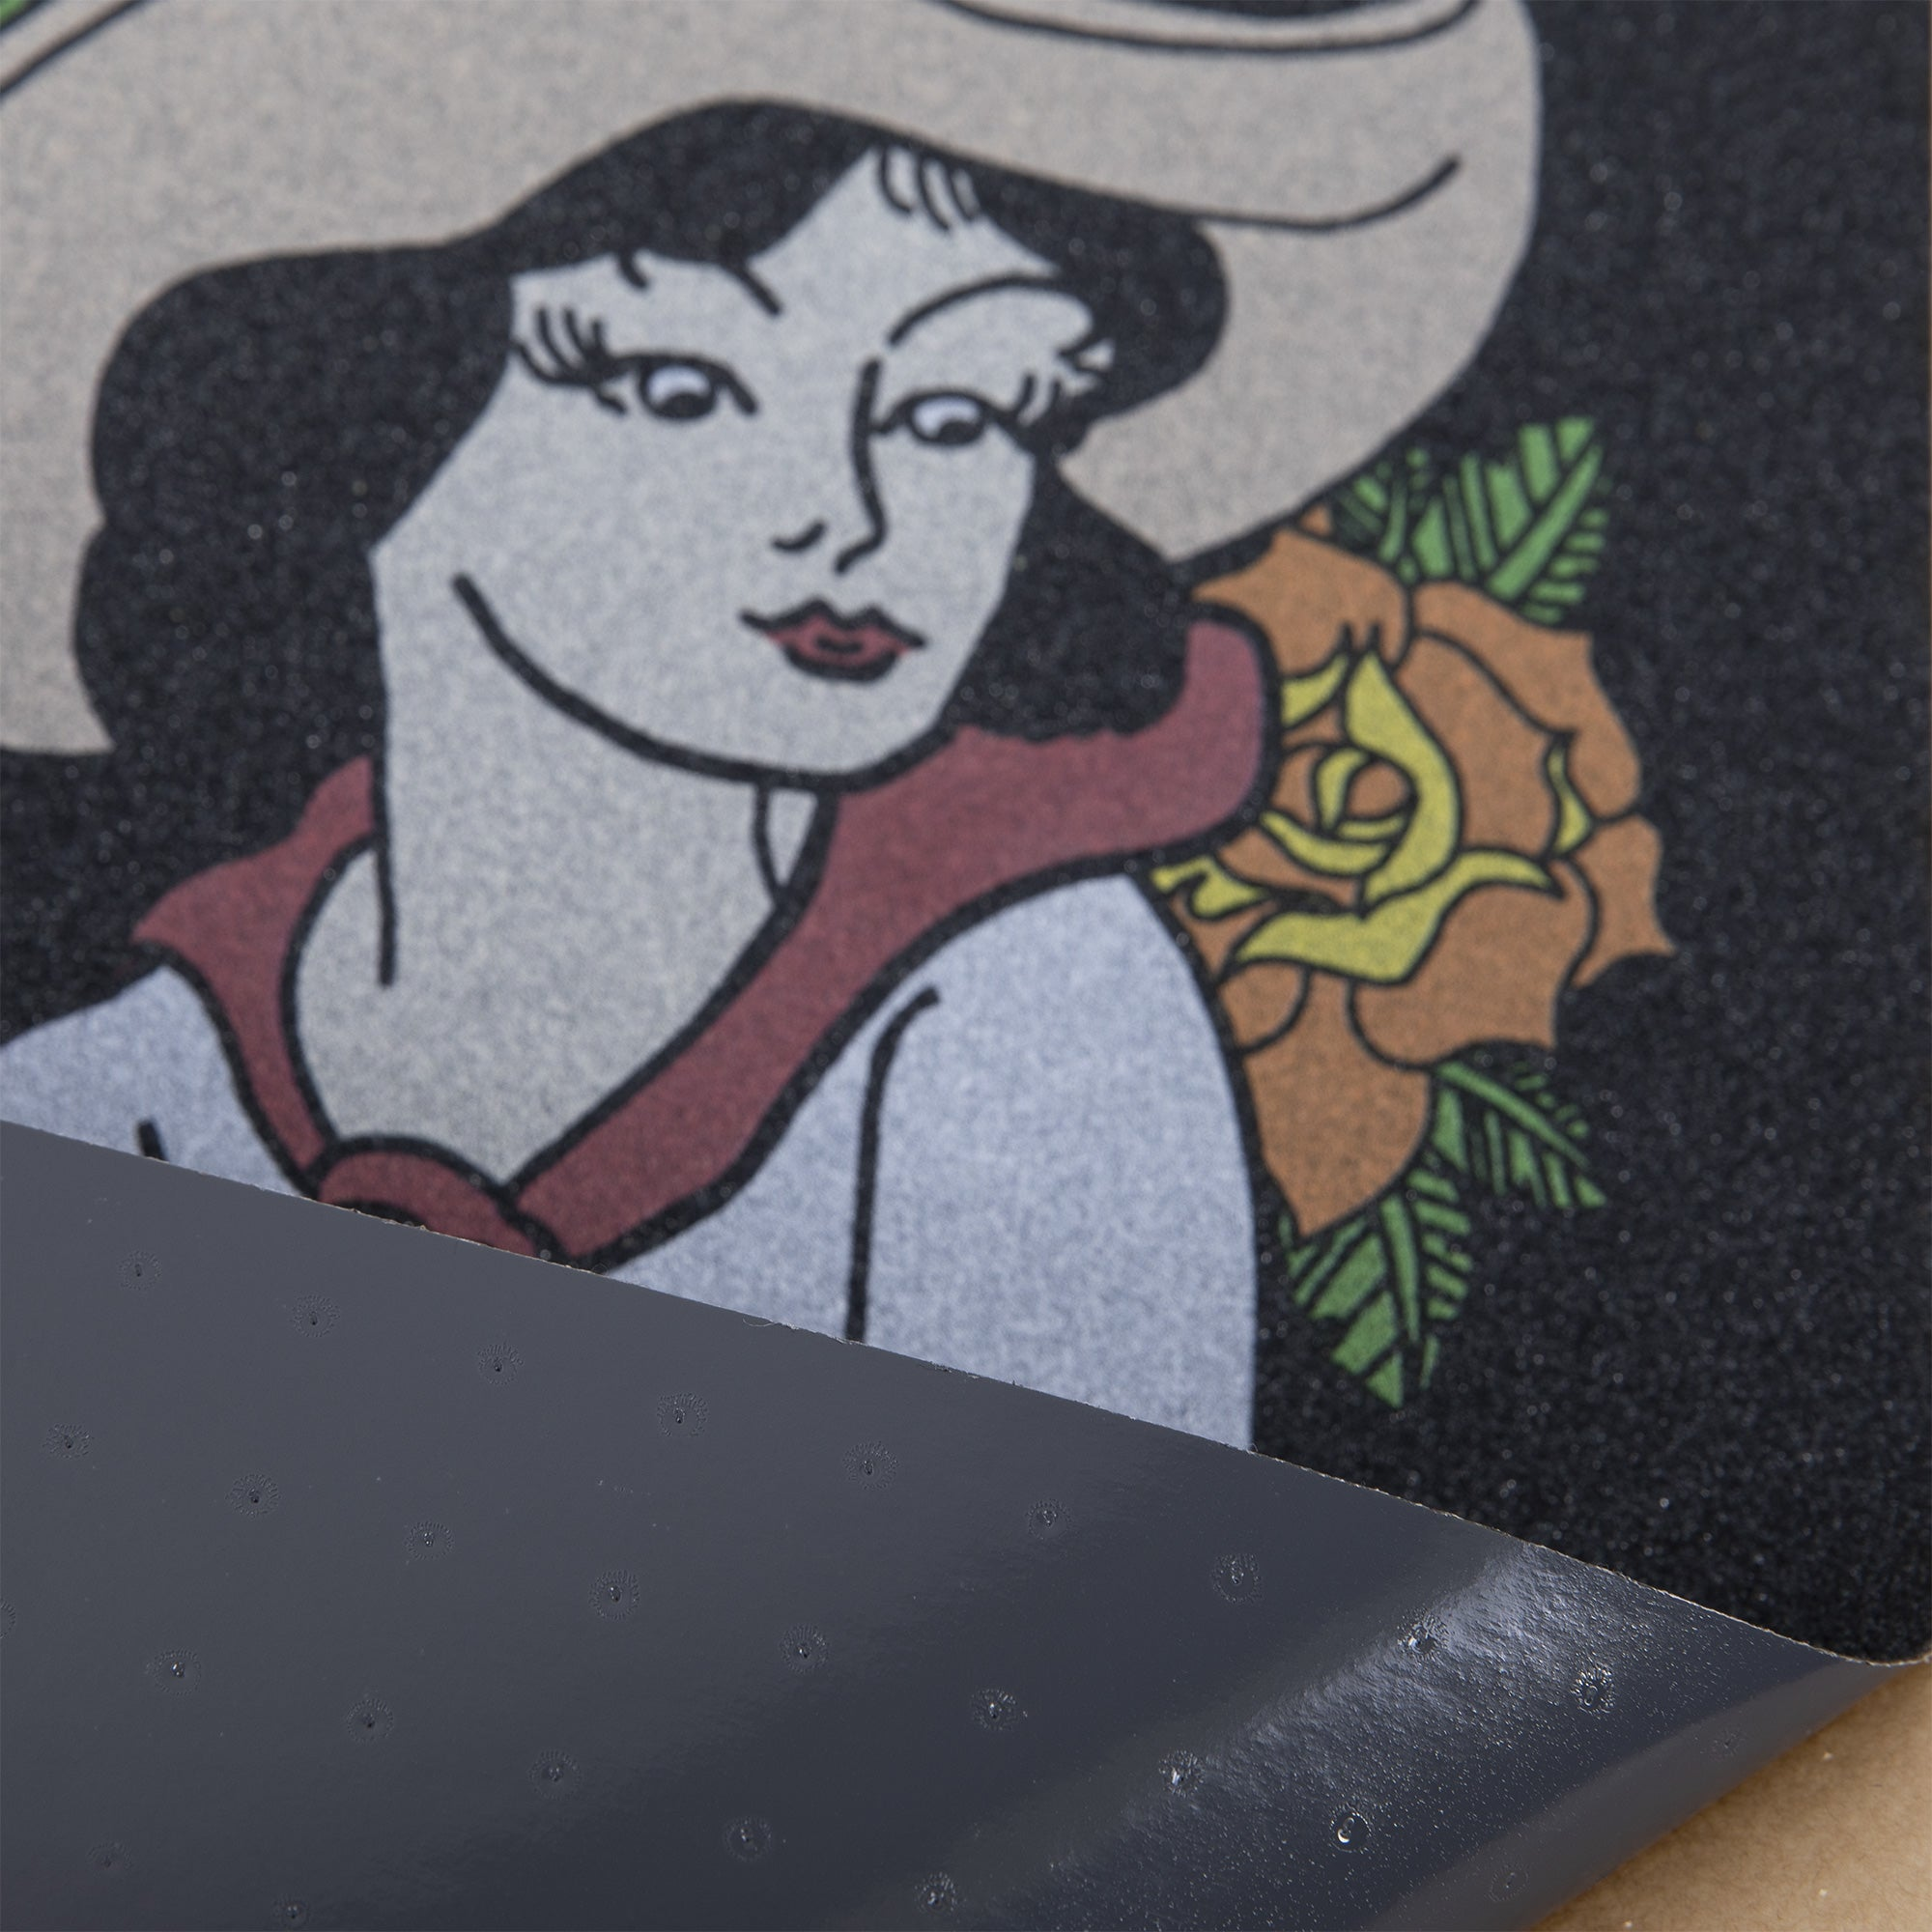 Cal 7 skateboard griptape with Cowgirl design